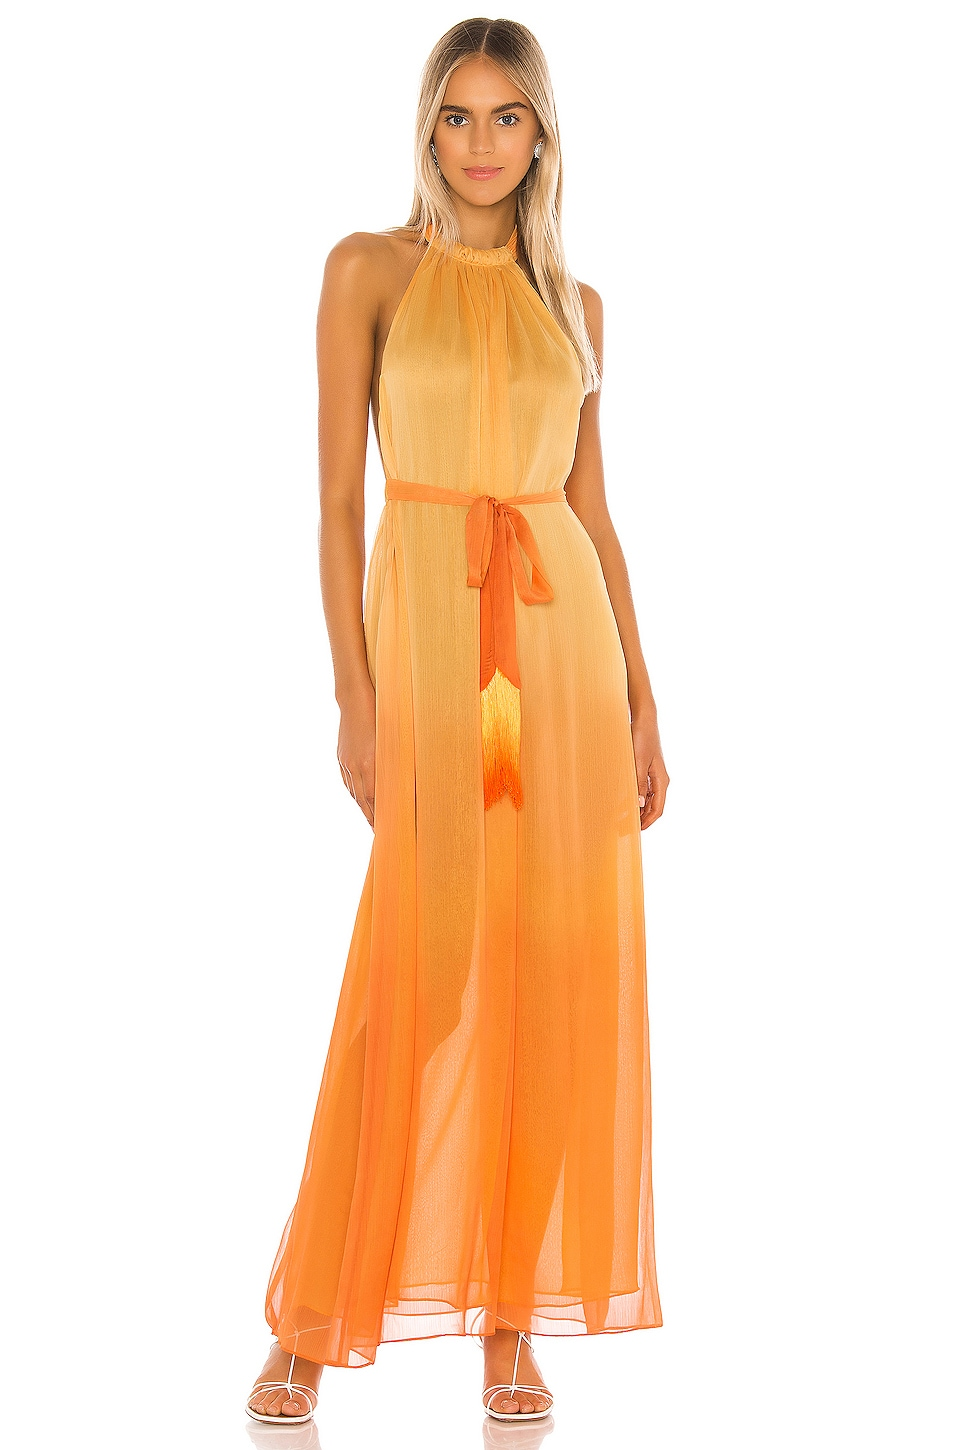 Ombre Halter Maxi Dress, view 2, click to view large image.